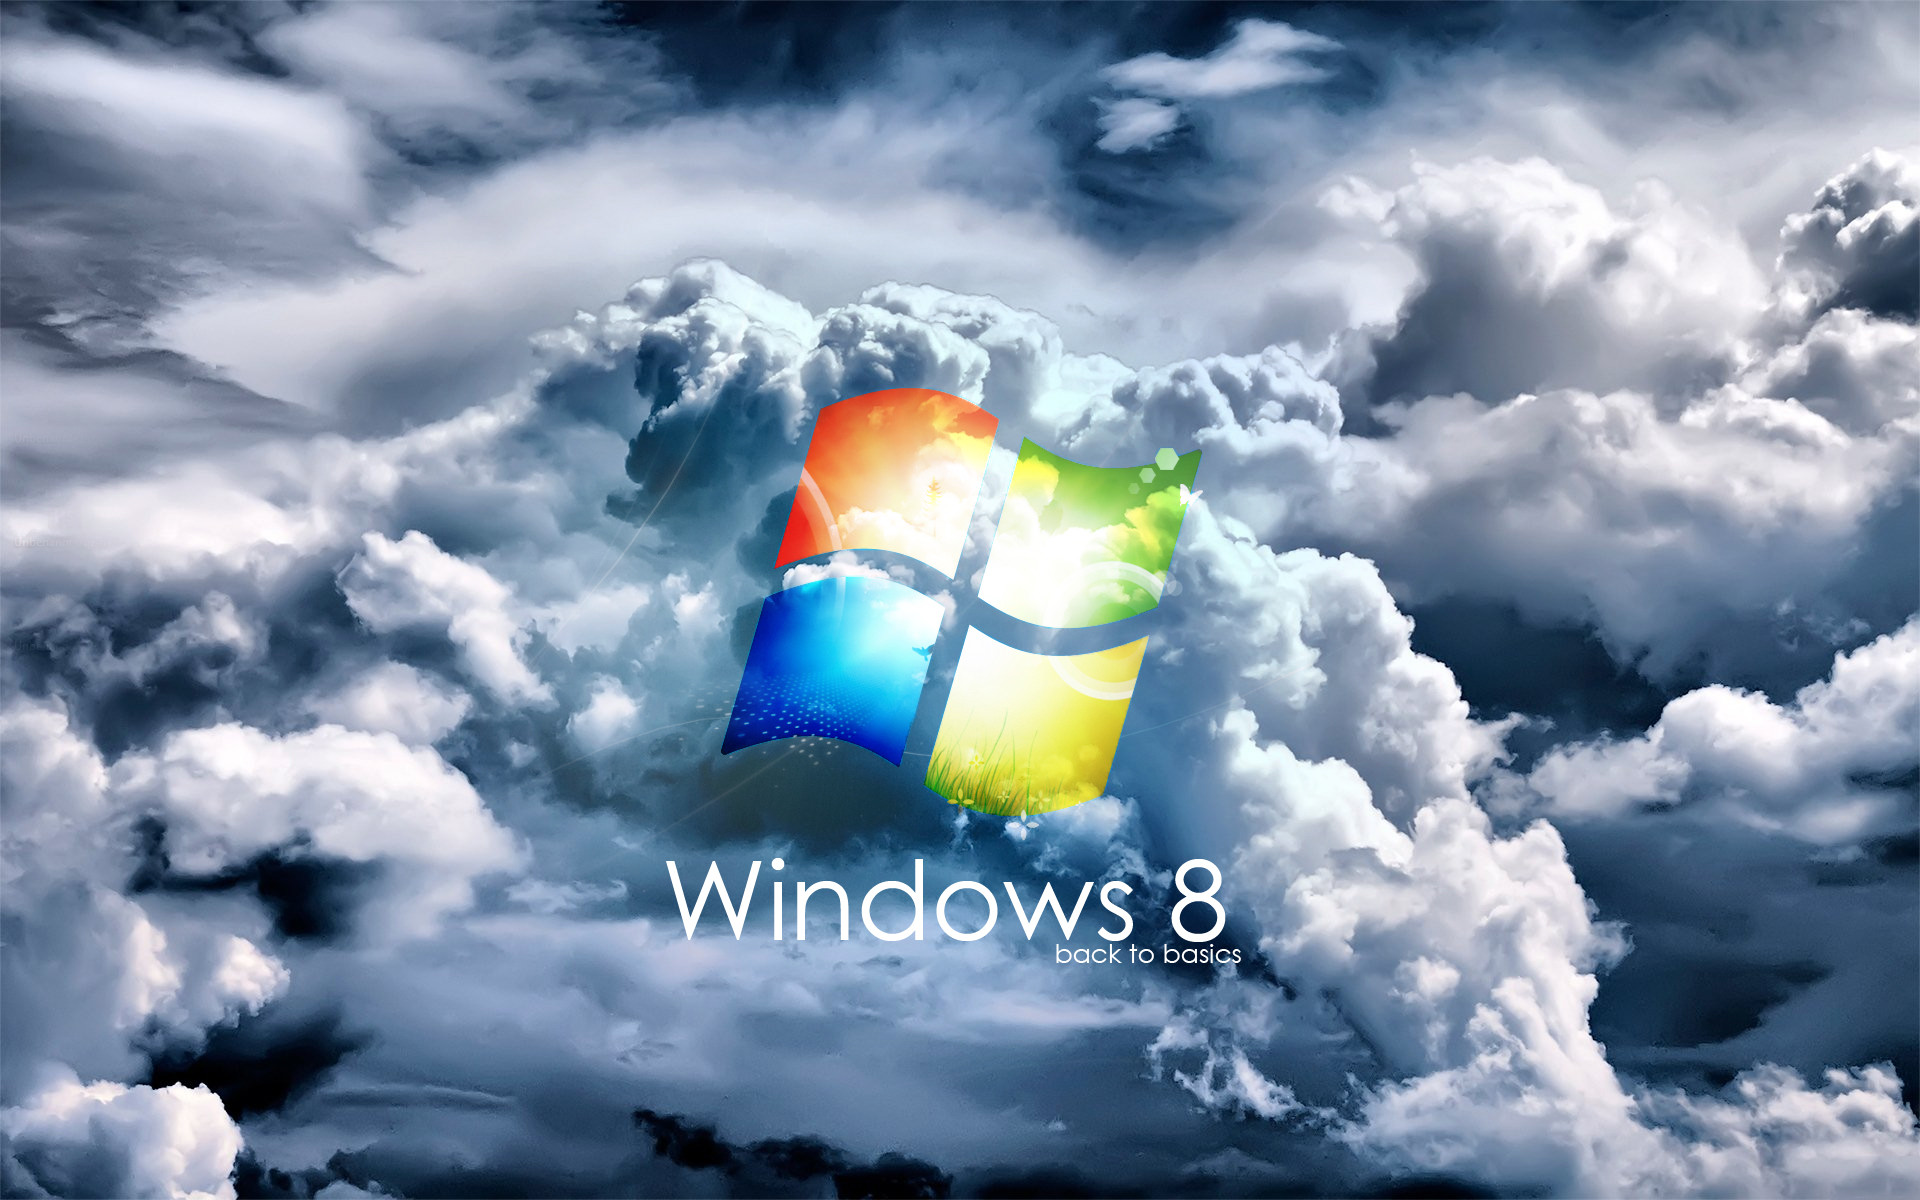 1920x1200 Windows 8 Backgrounds - High-resolution wallpapers for your PC